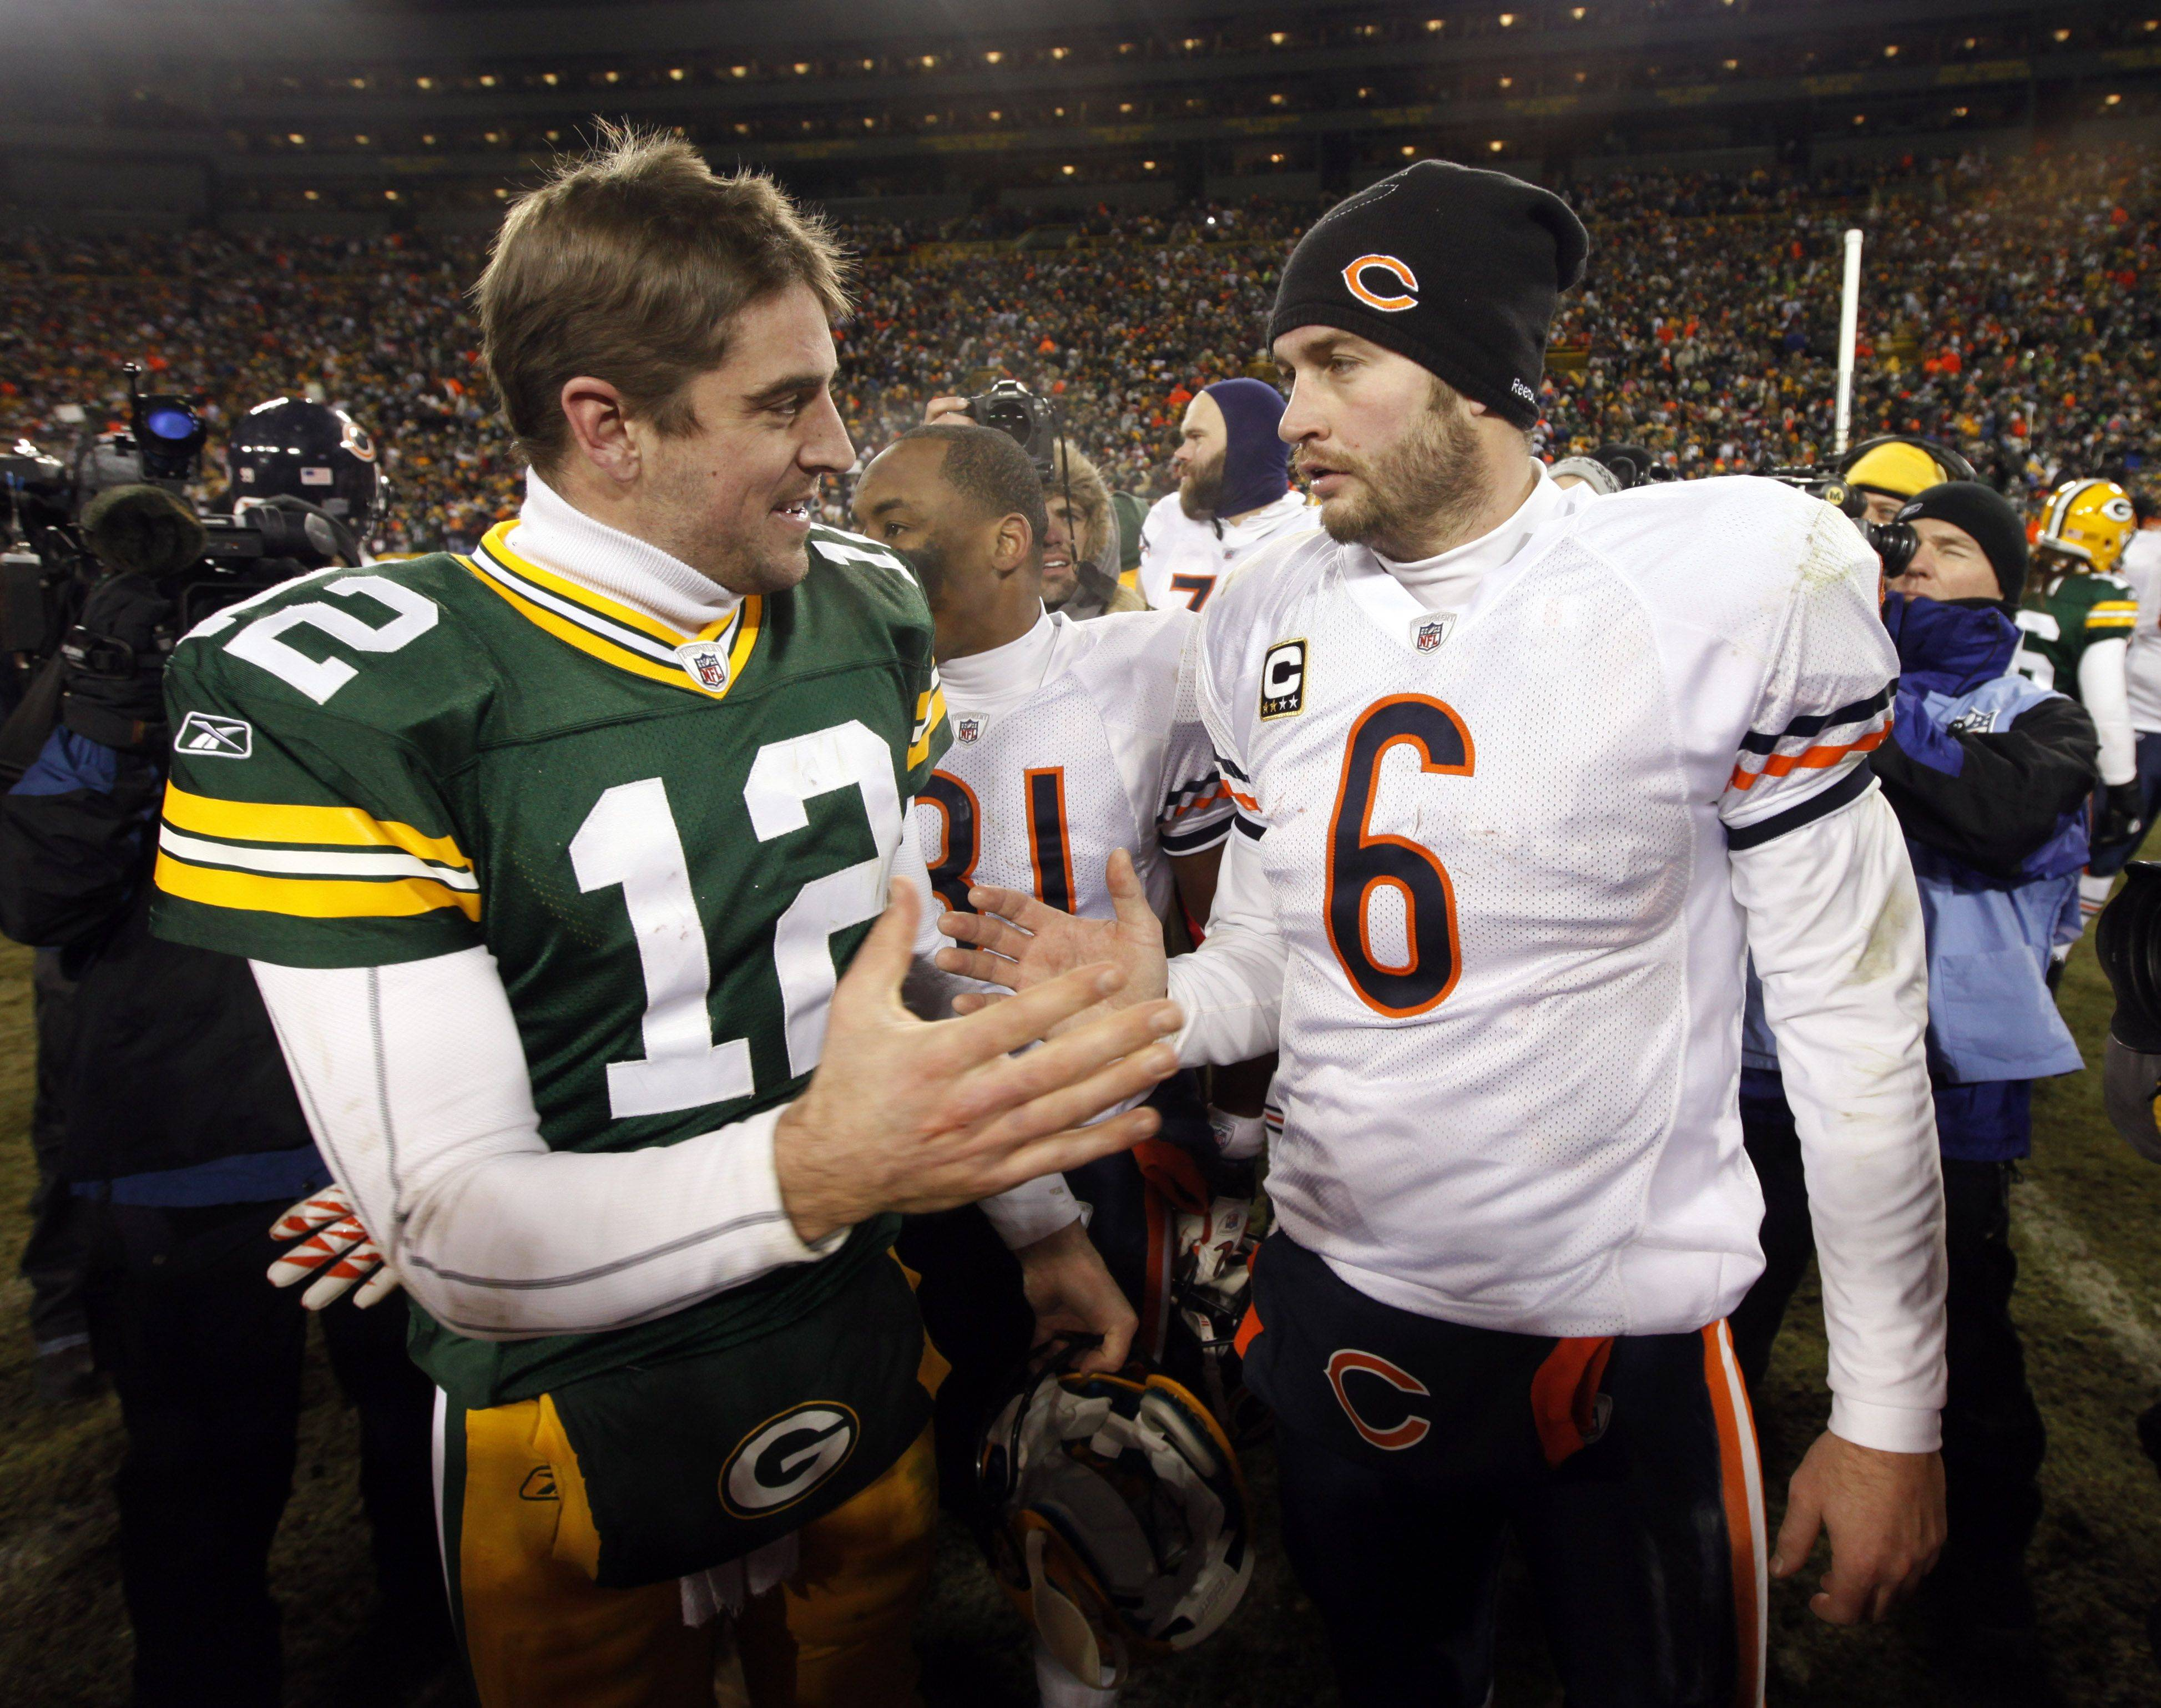 Green Bay Packers quarterback Aaron Rodgers talks to Chicago Bears quarterback Jay Cutler after the Packers won the game.